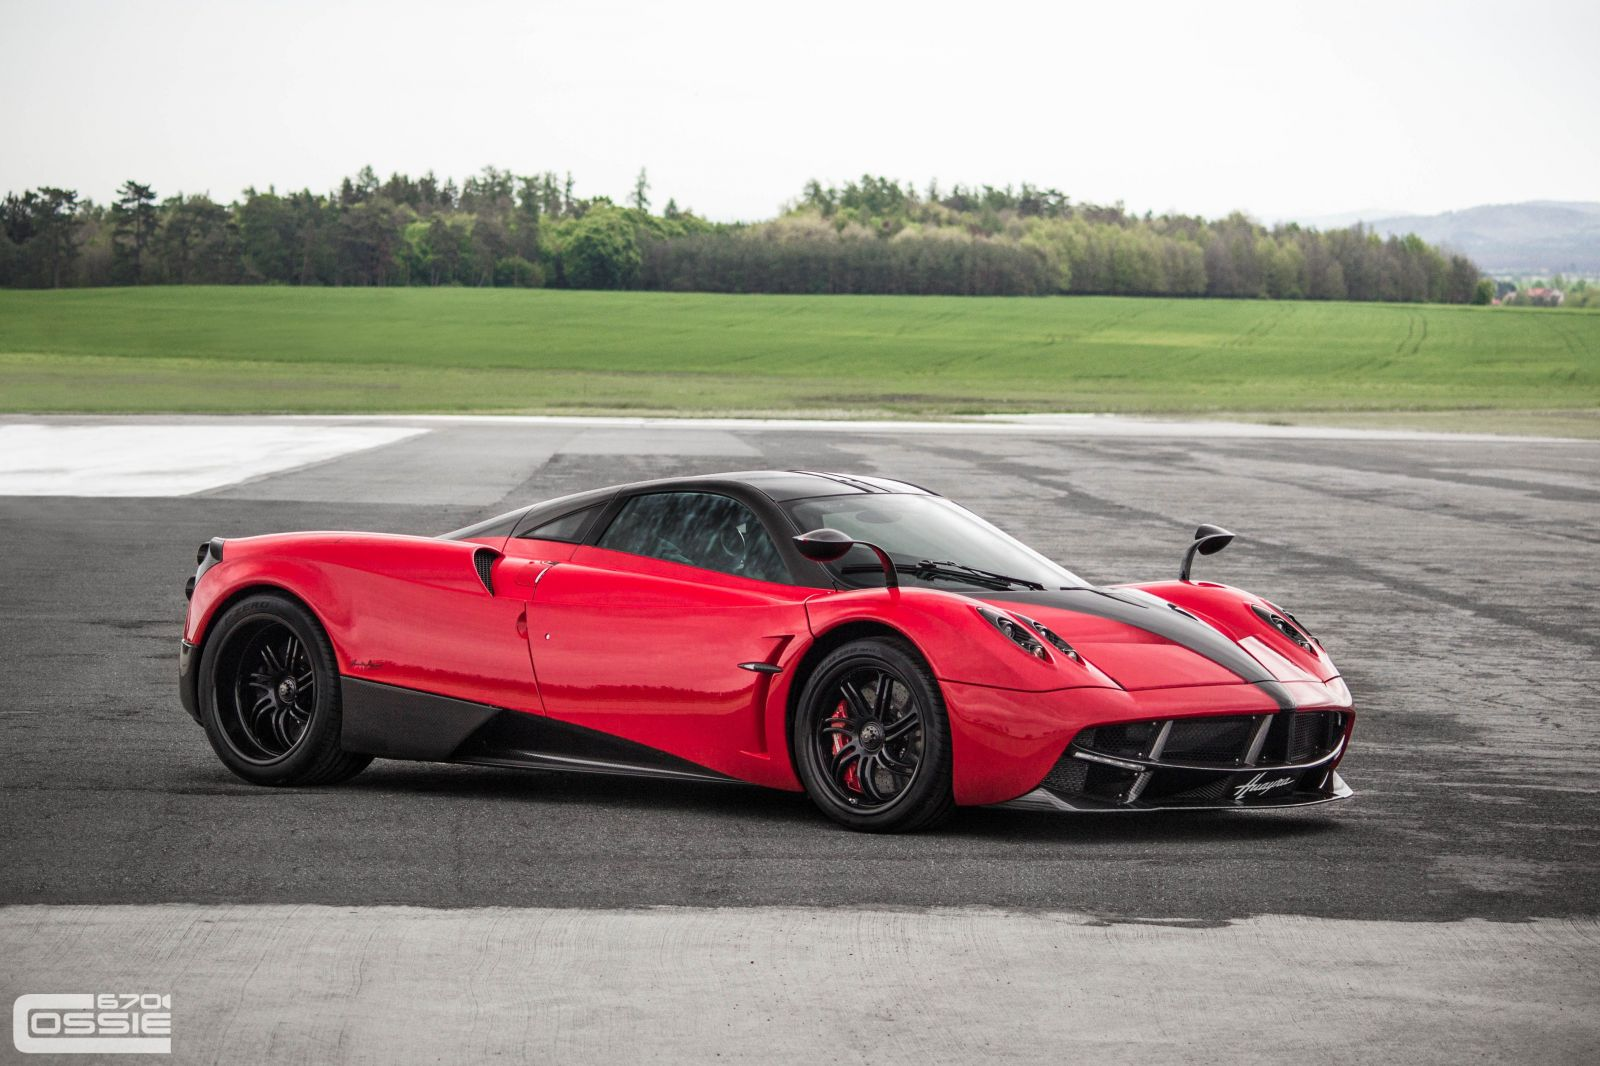 Pagani Huayra - Red, Black interior #76051 - Forum ...